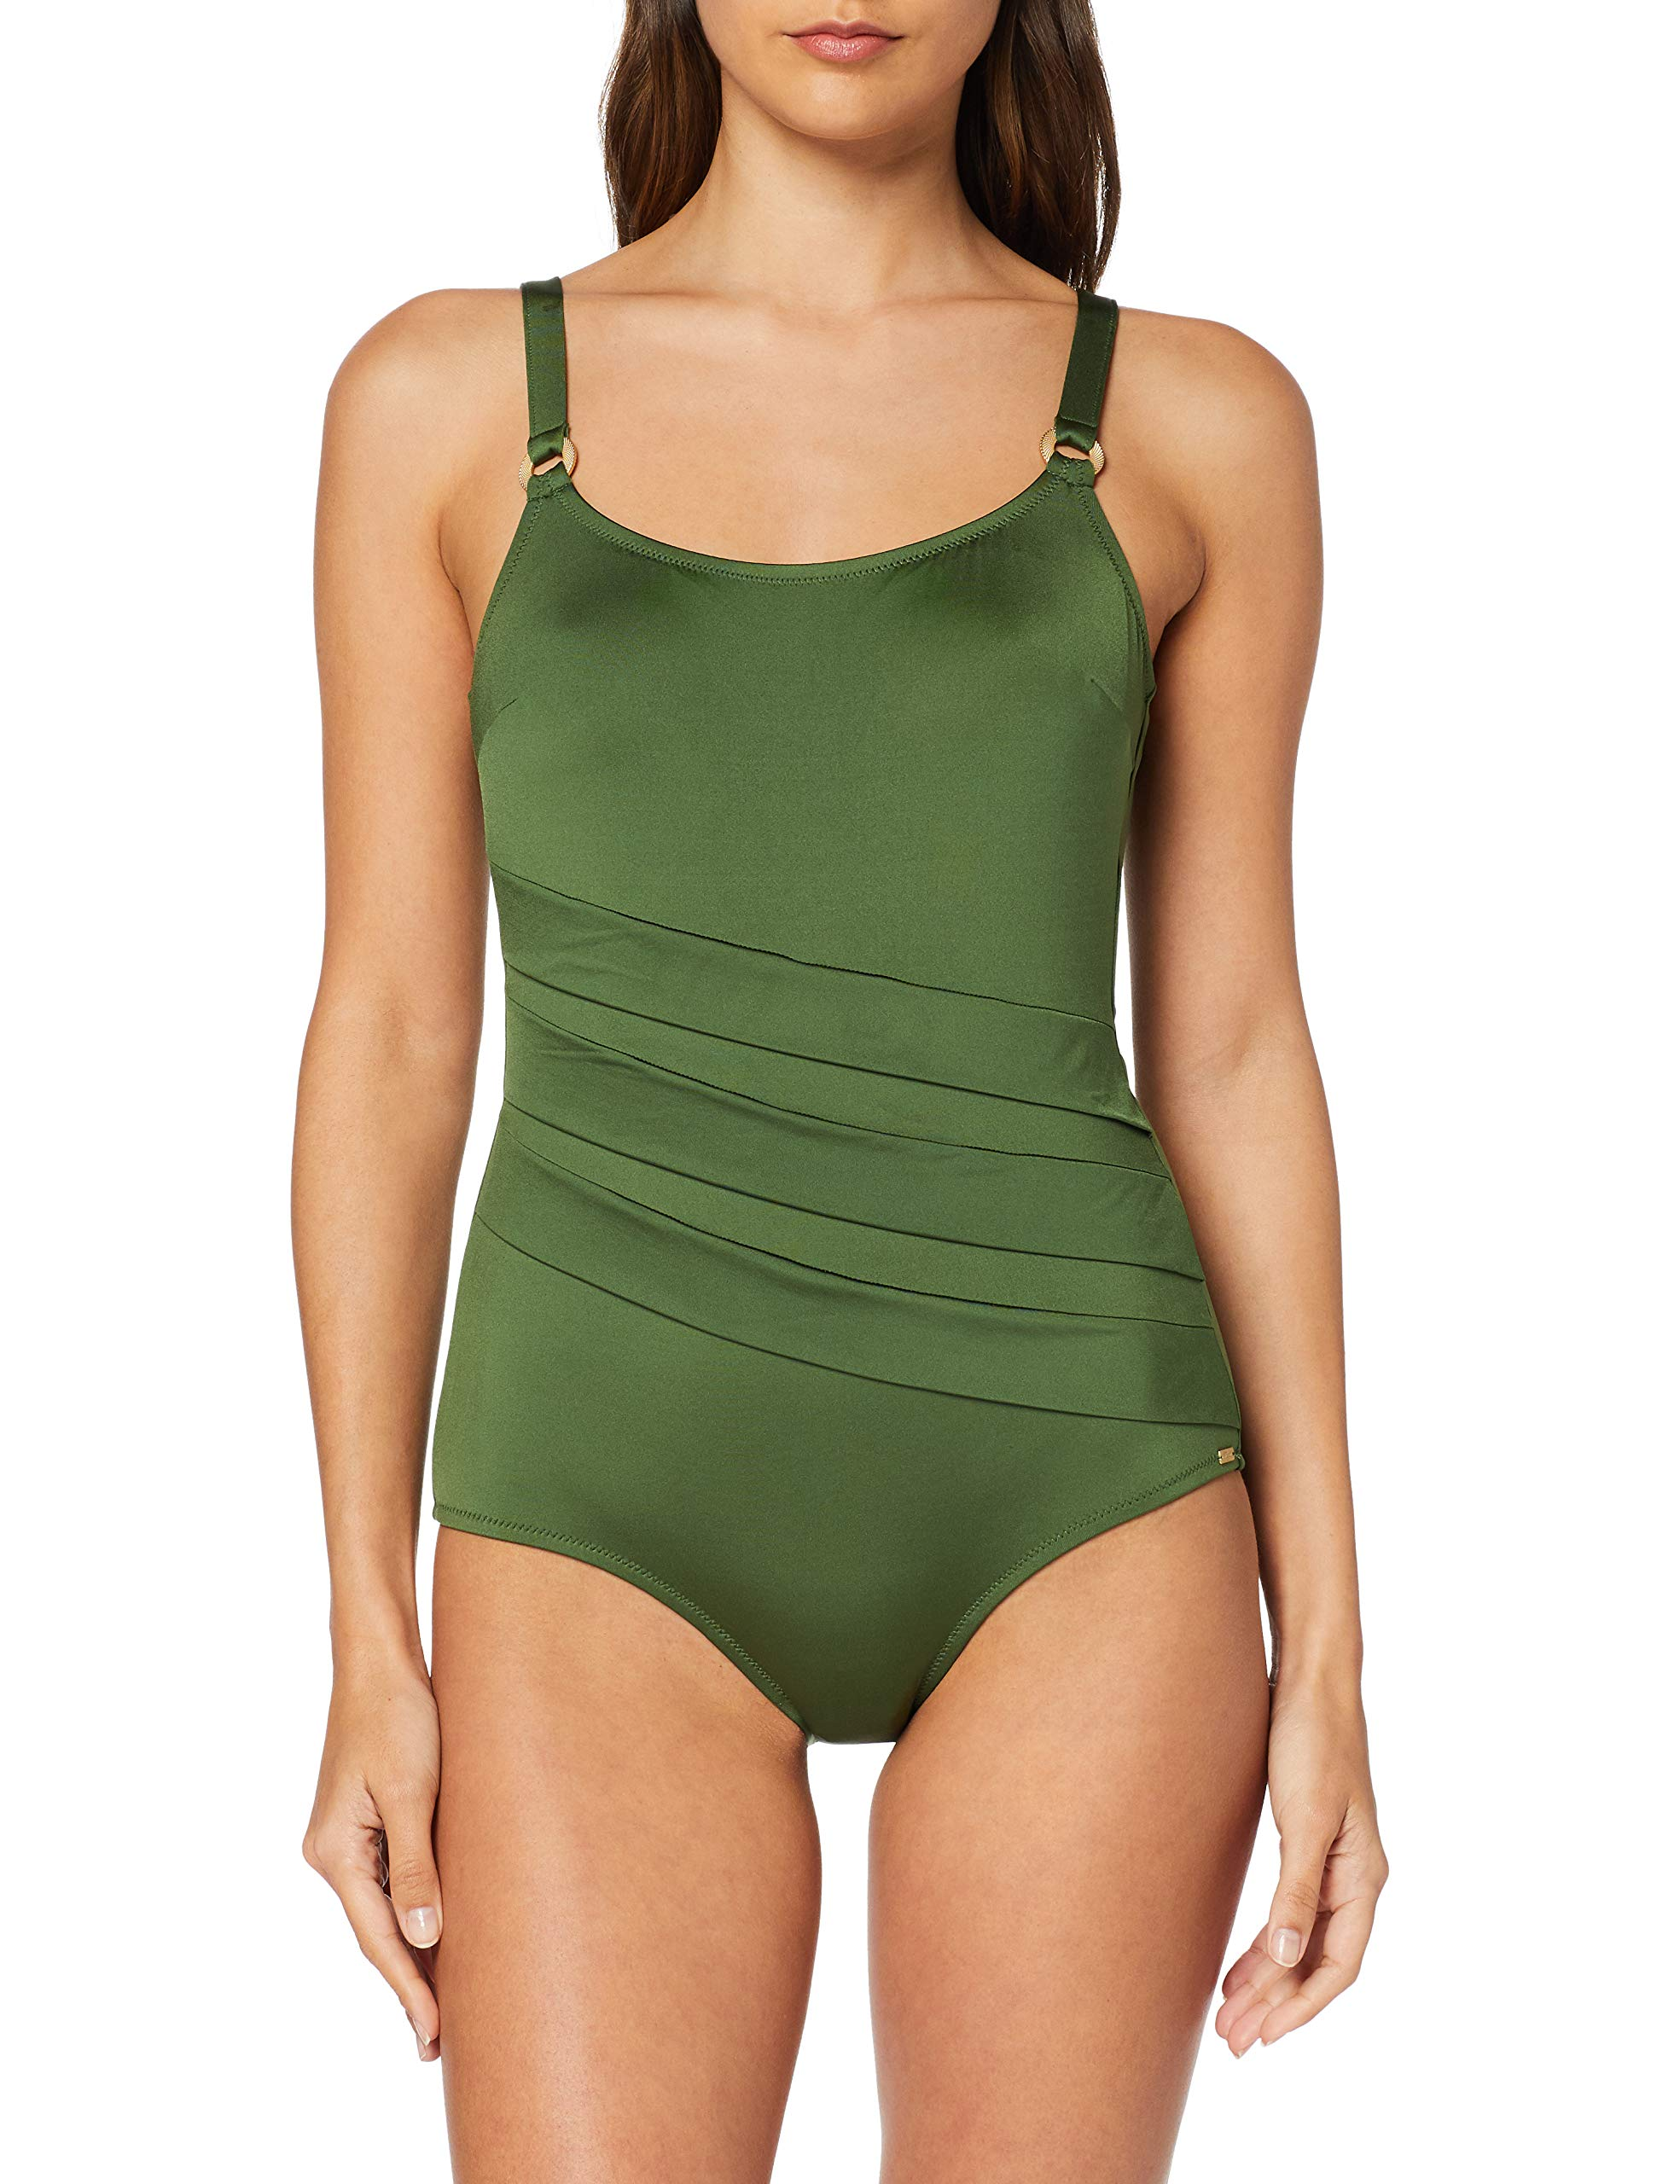 Splashes Algae Op Triumph Solid Maillots De BainVertmagic 721795ctaille Fabricant40Femme bf7Y6gyv